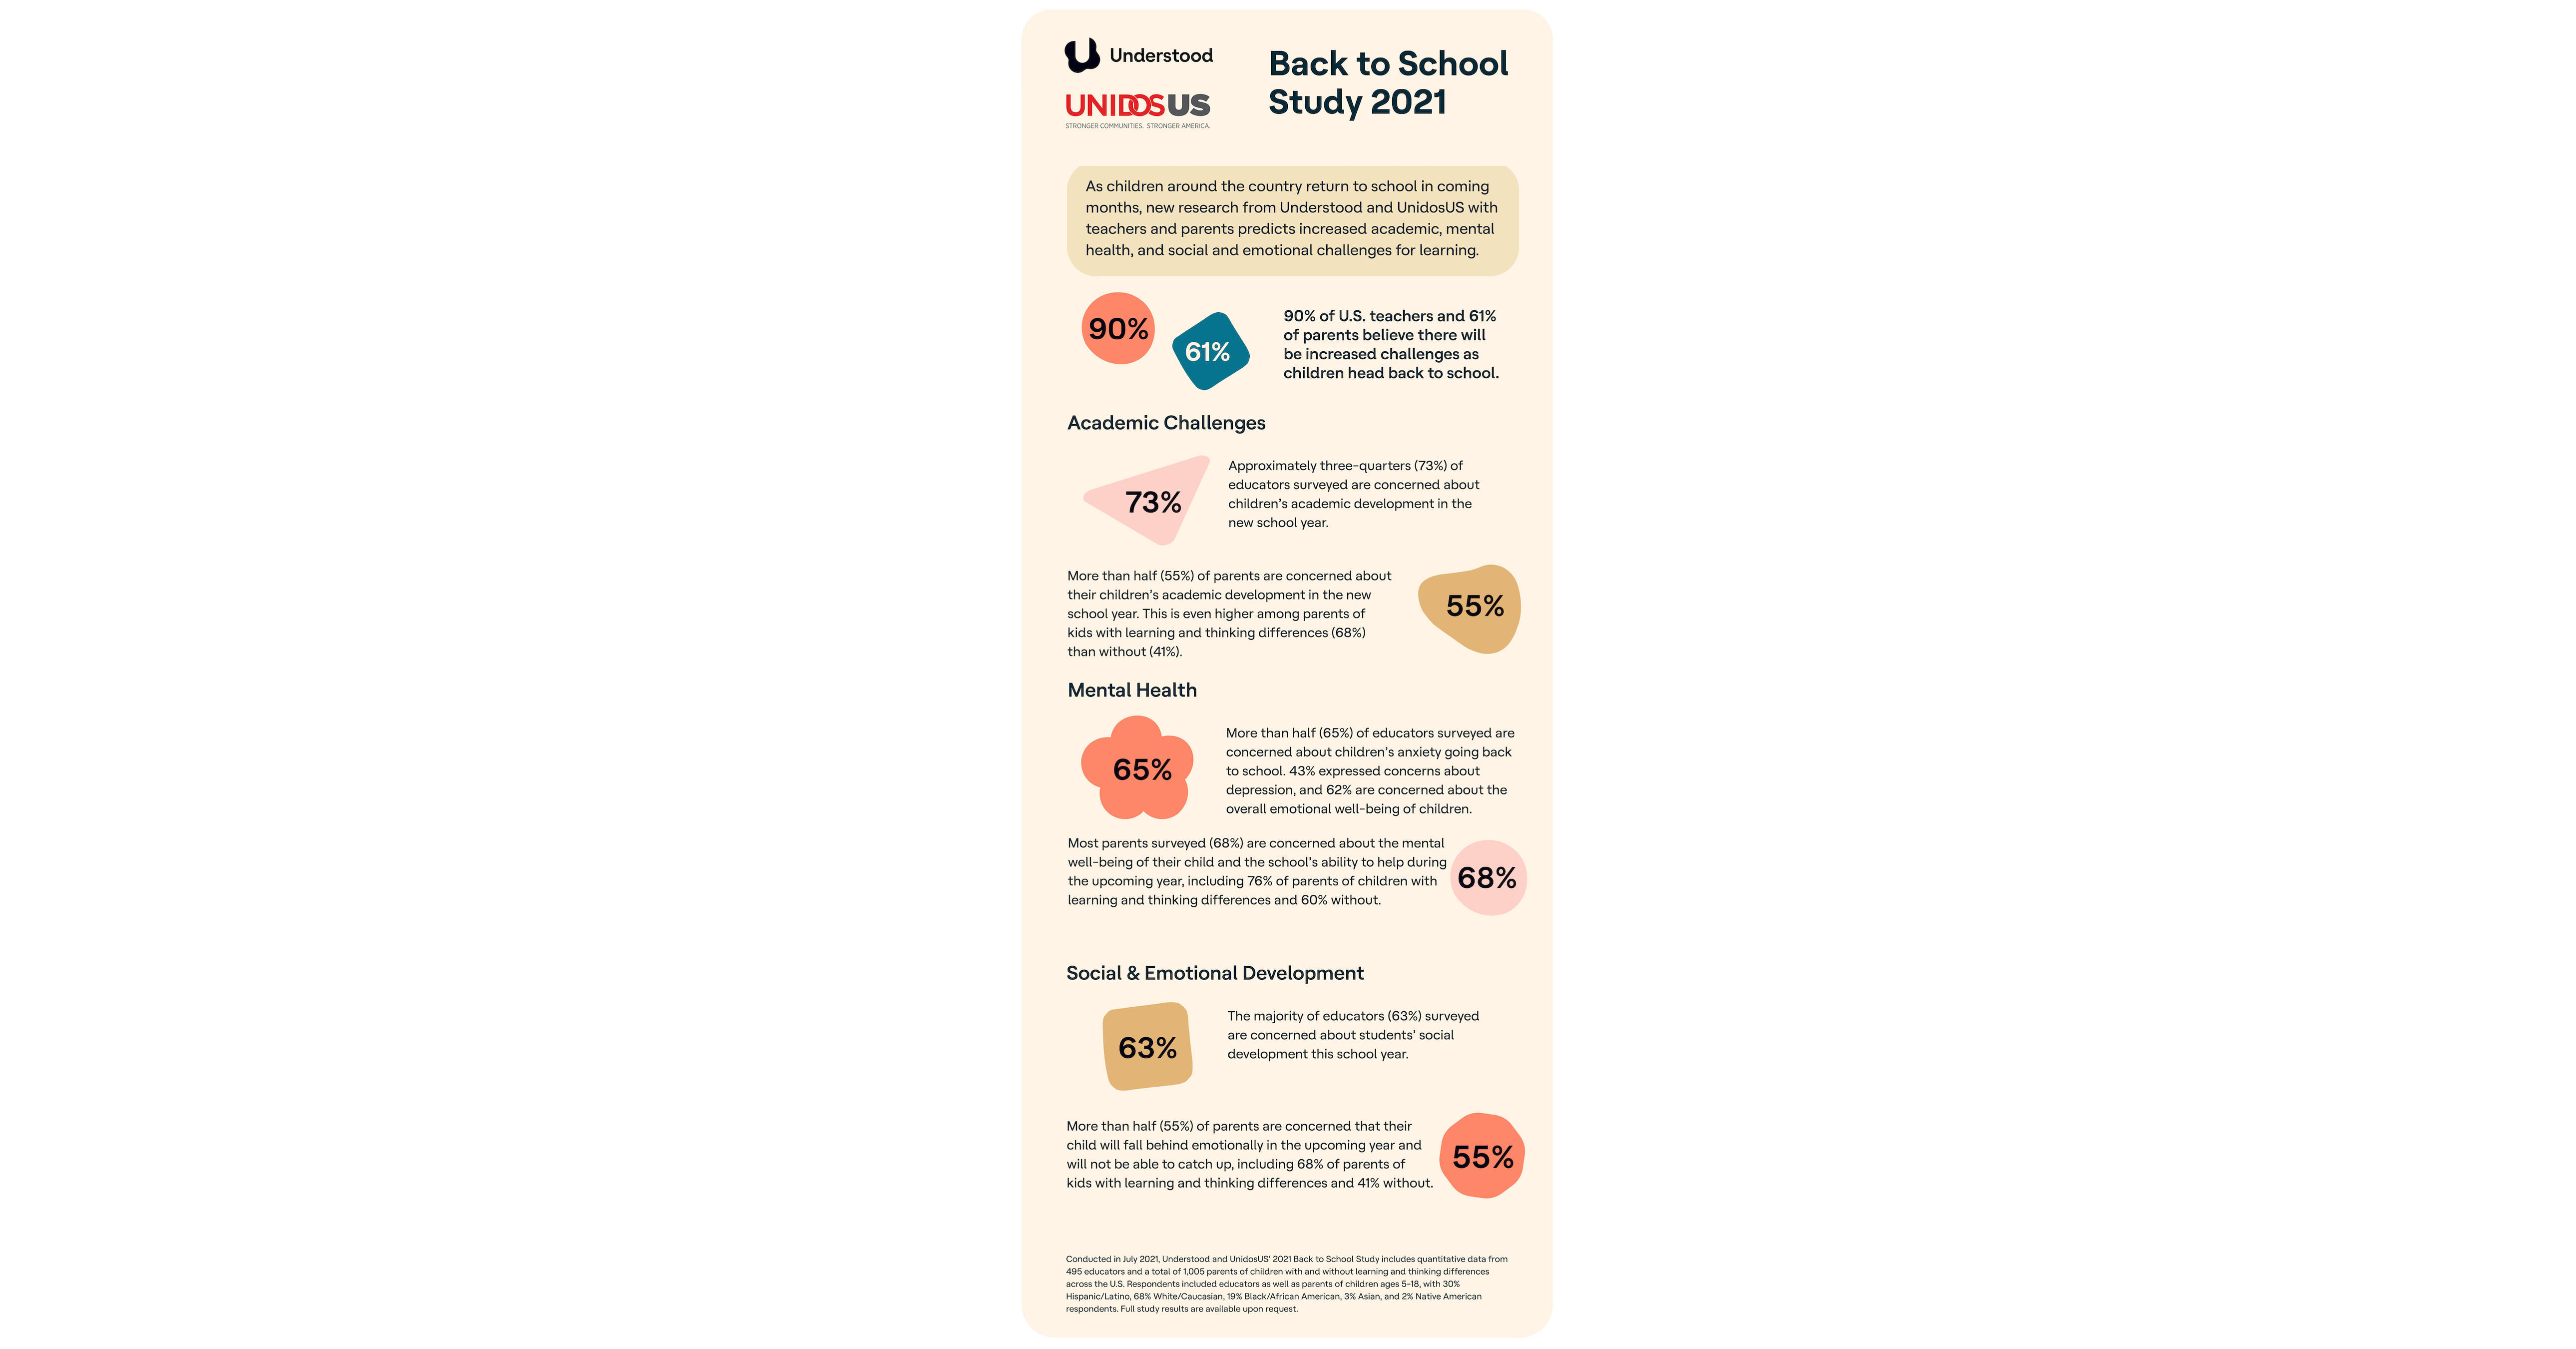 www.prnewswire.com: New Understood and UnidosUS Study Confirms Lost School Year With 90% of U.S. Teachers and 61% of Parents Predicting Increased Challenges as Children Head Back to School